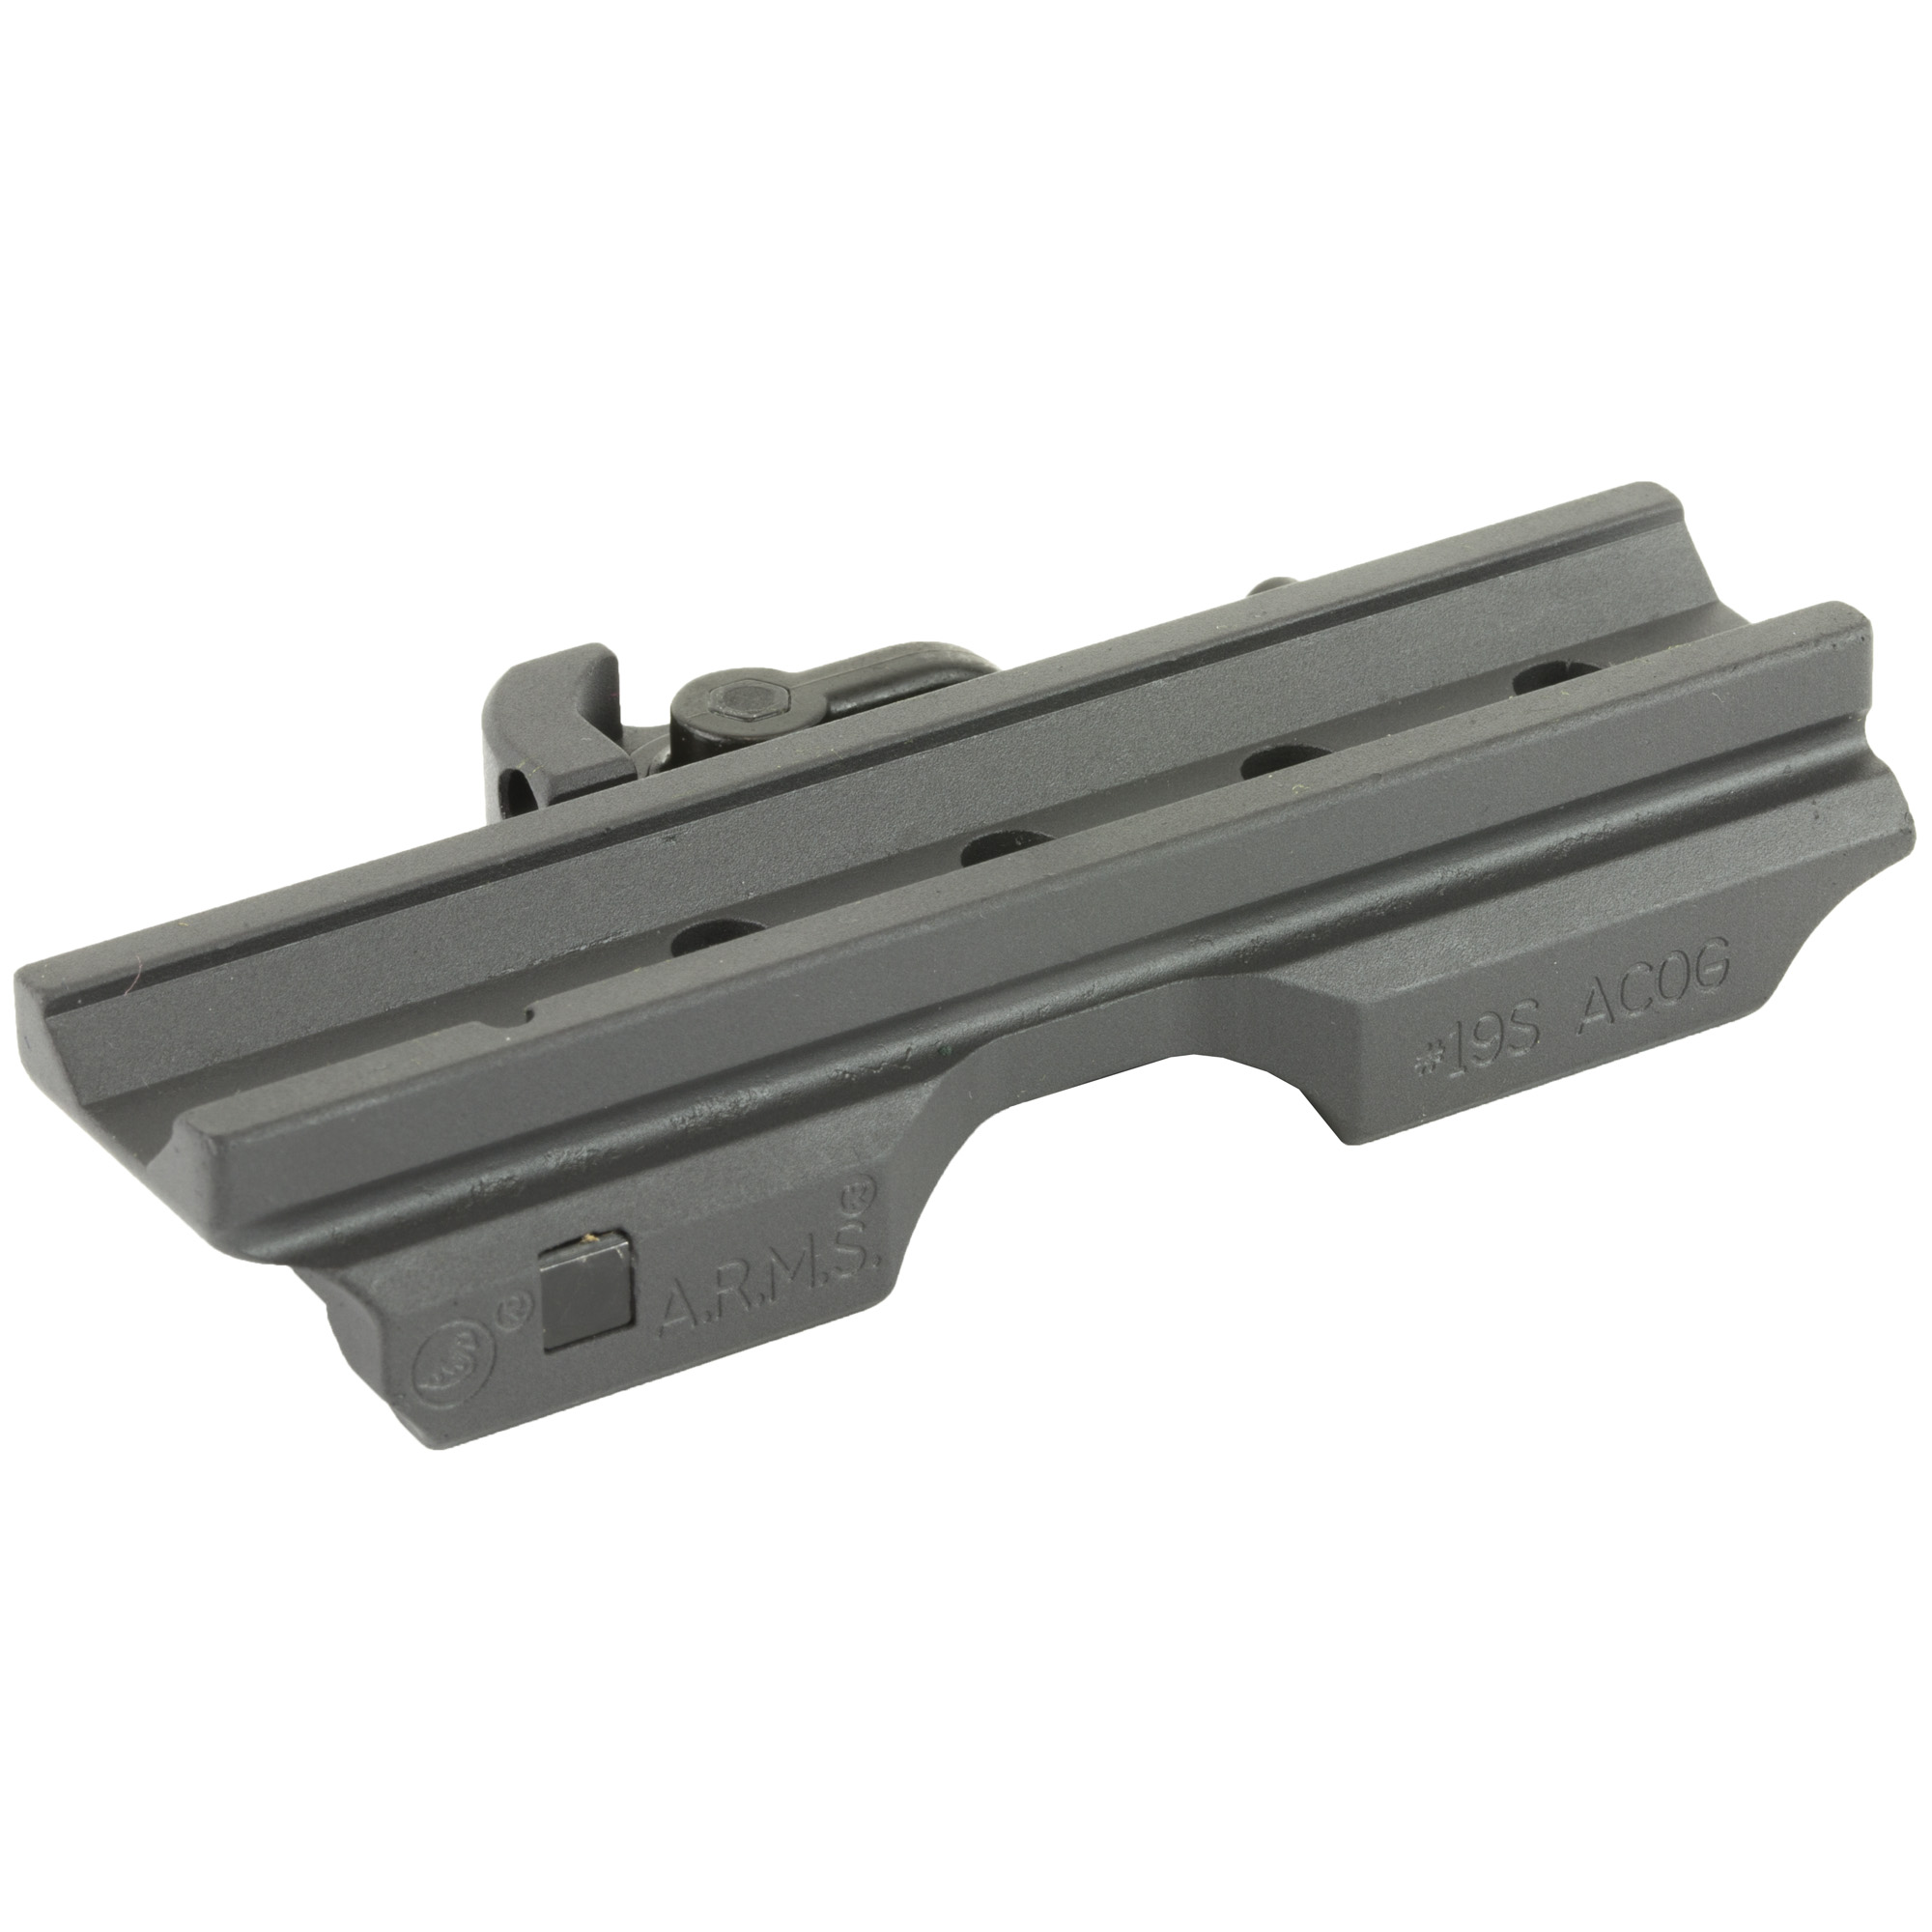 """The #19(TM)S ACOG(R) is a compact single Throw Lever(R) base that is the same length as the built in M16 carry handle mounting platform (approx. 4"""") found on all ACOG(R) scopes. The smaller design provides more available rail space"""" less weight and no compromise in accuracy or ruggedness. US Pat. No. 5276988"""" 7493721"""